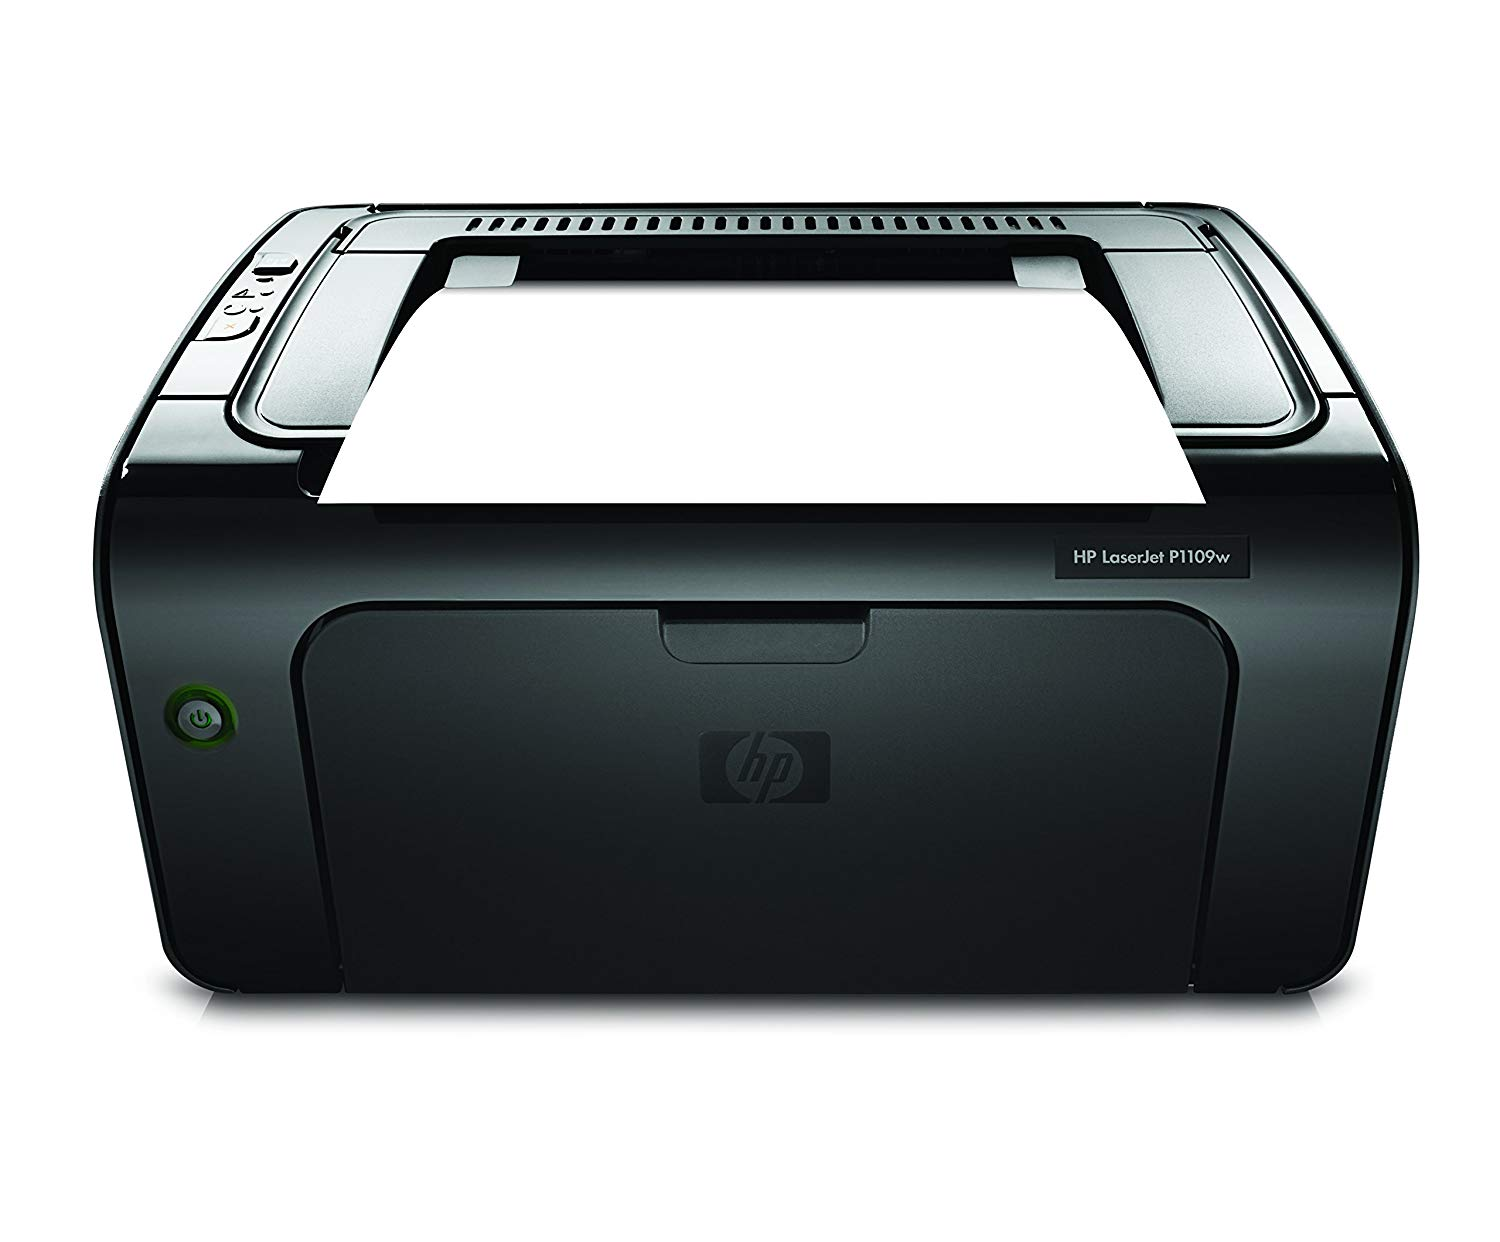 Hp psc 1350 driver download.